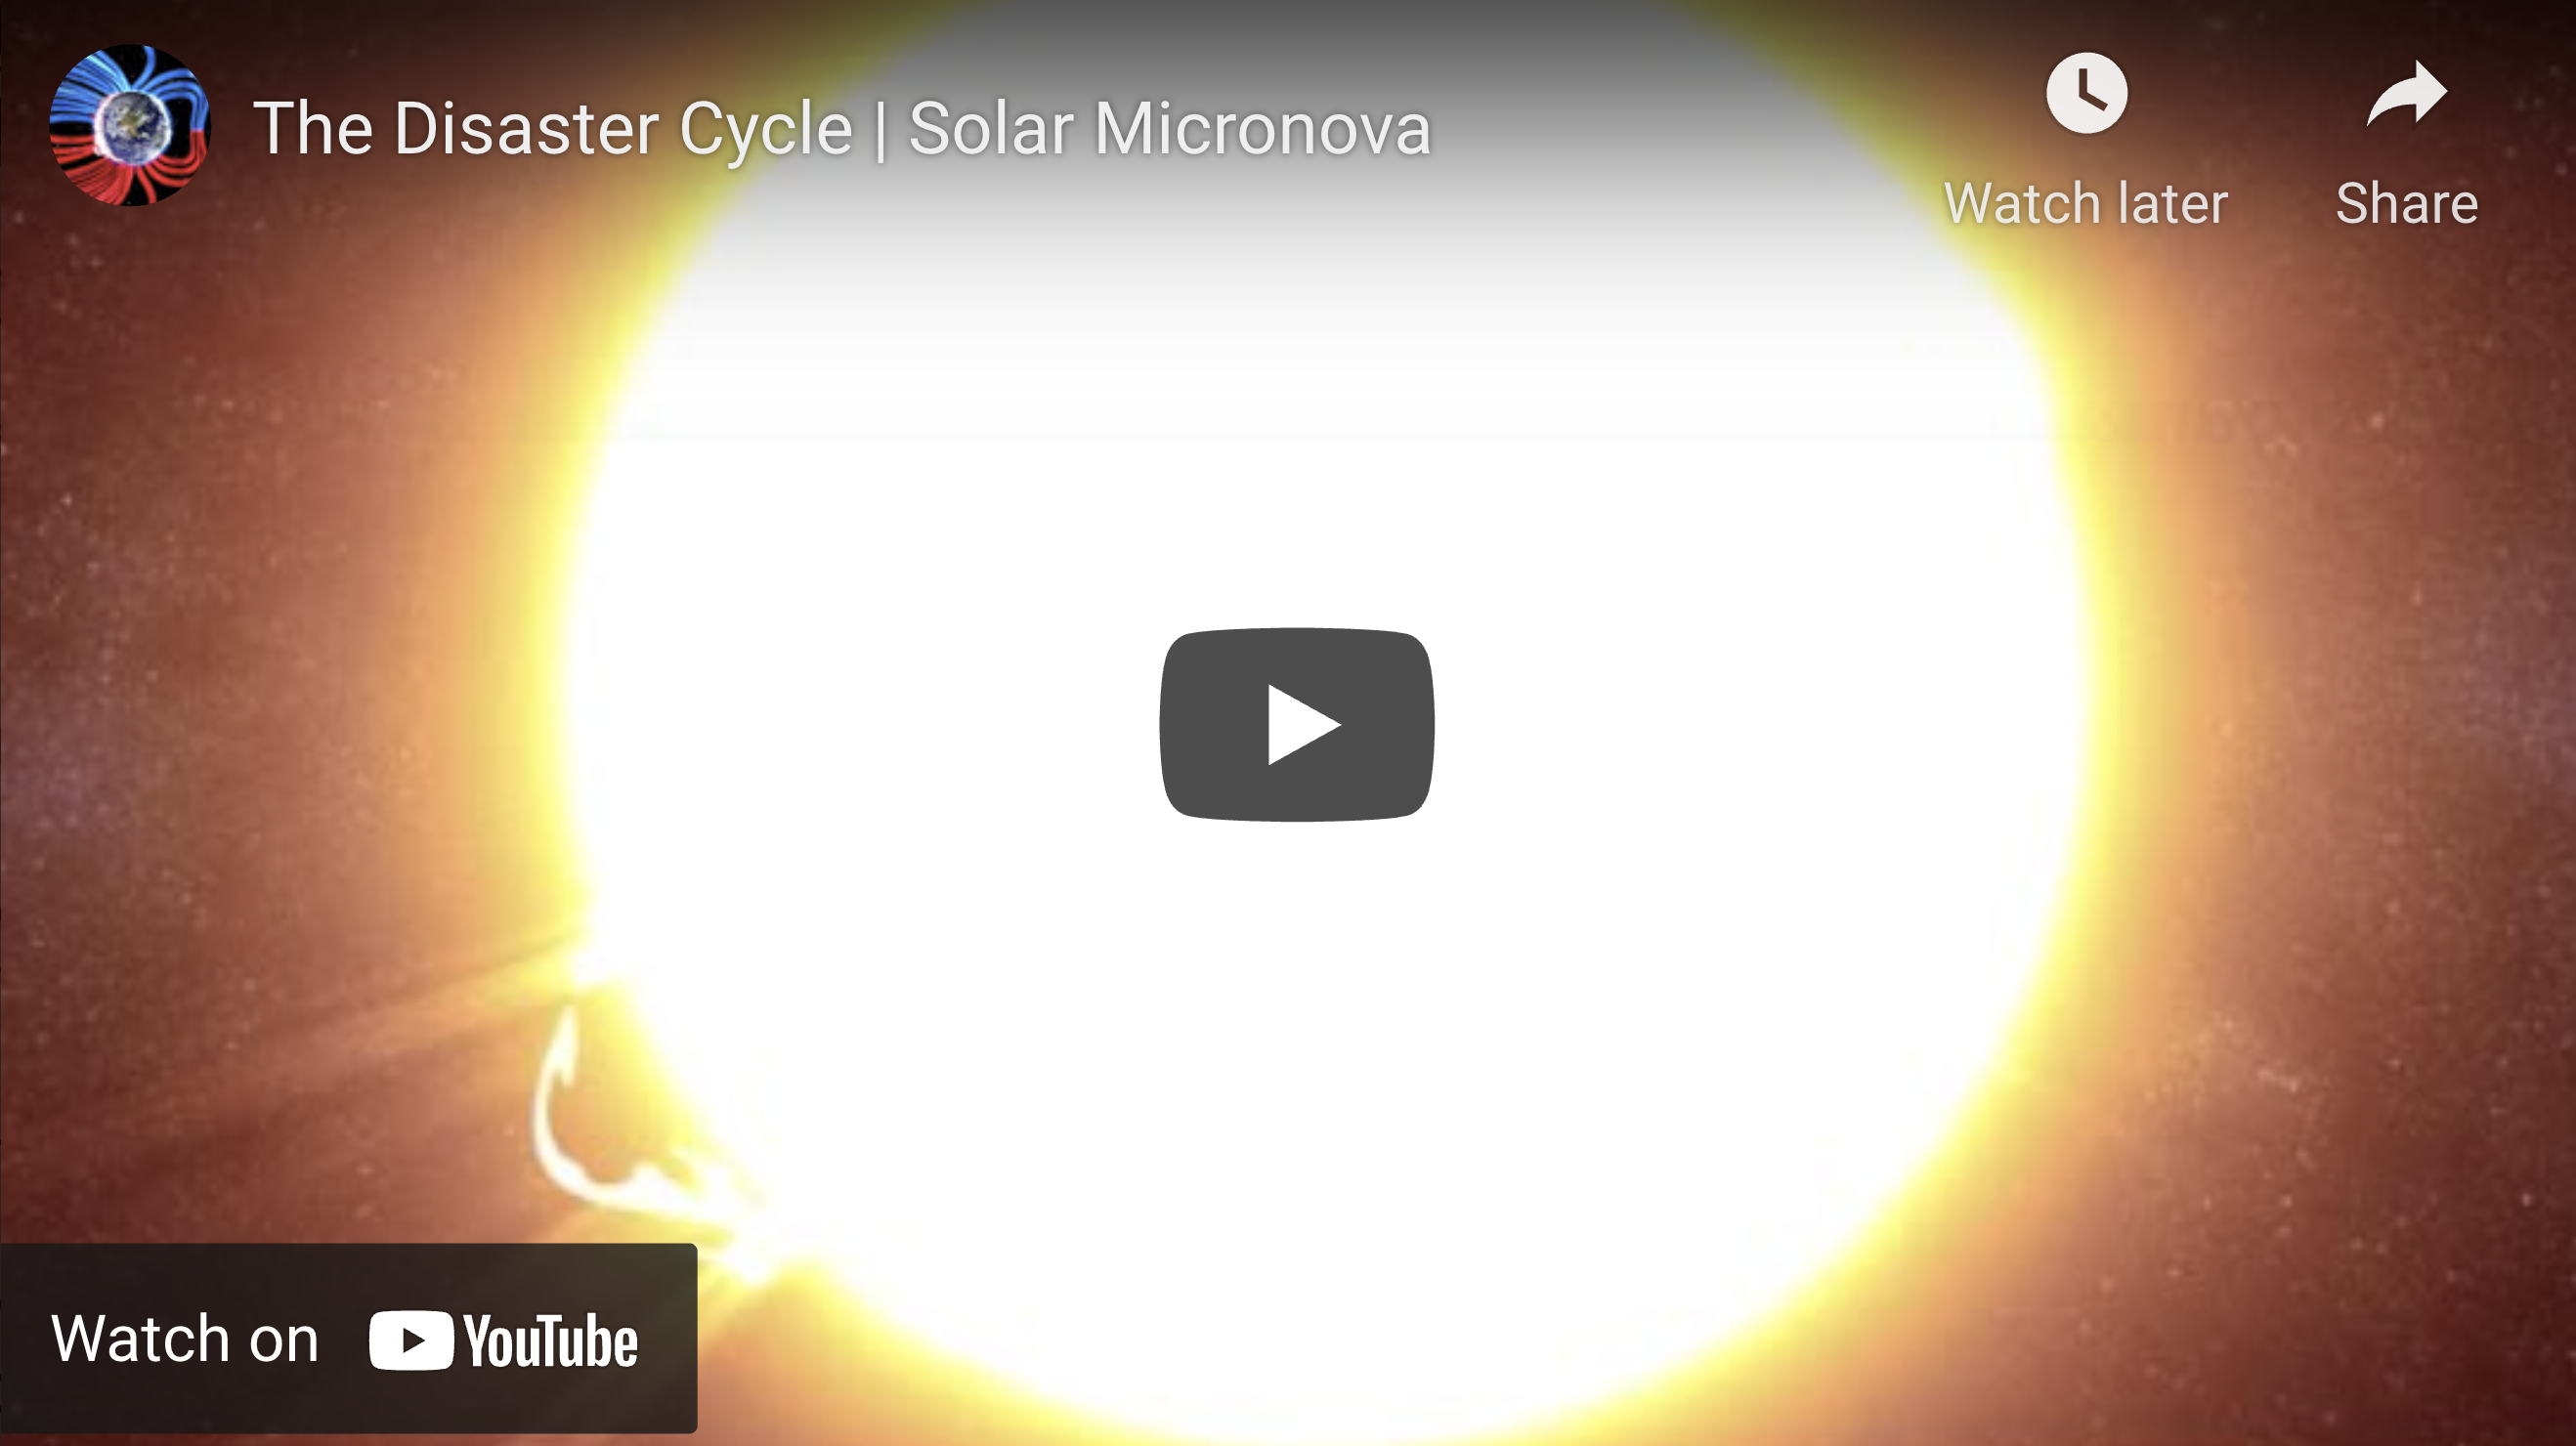 Suspicious Observers Post EXZM Zack Mount May 31st 2021 The Disaster Cycle Solar Micronova